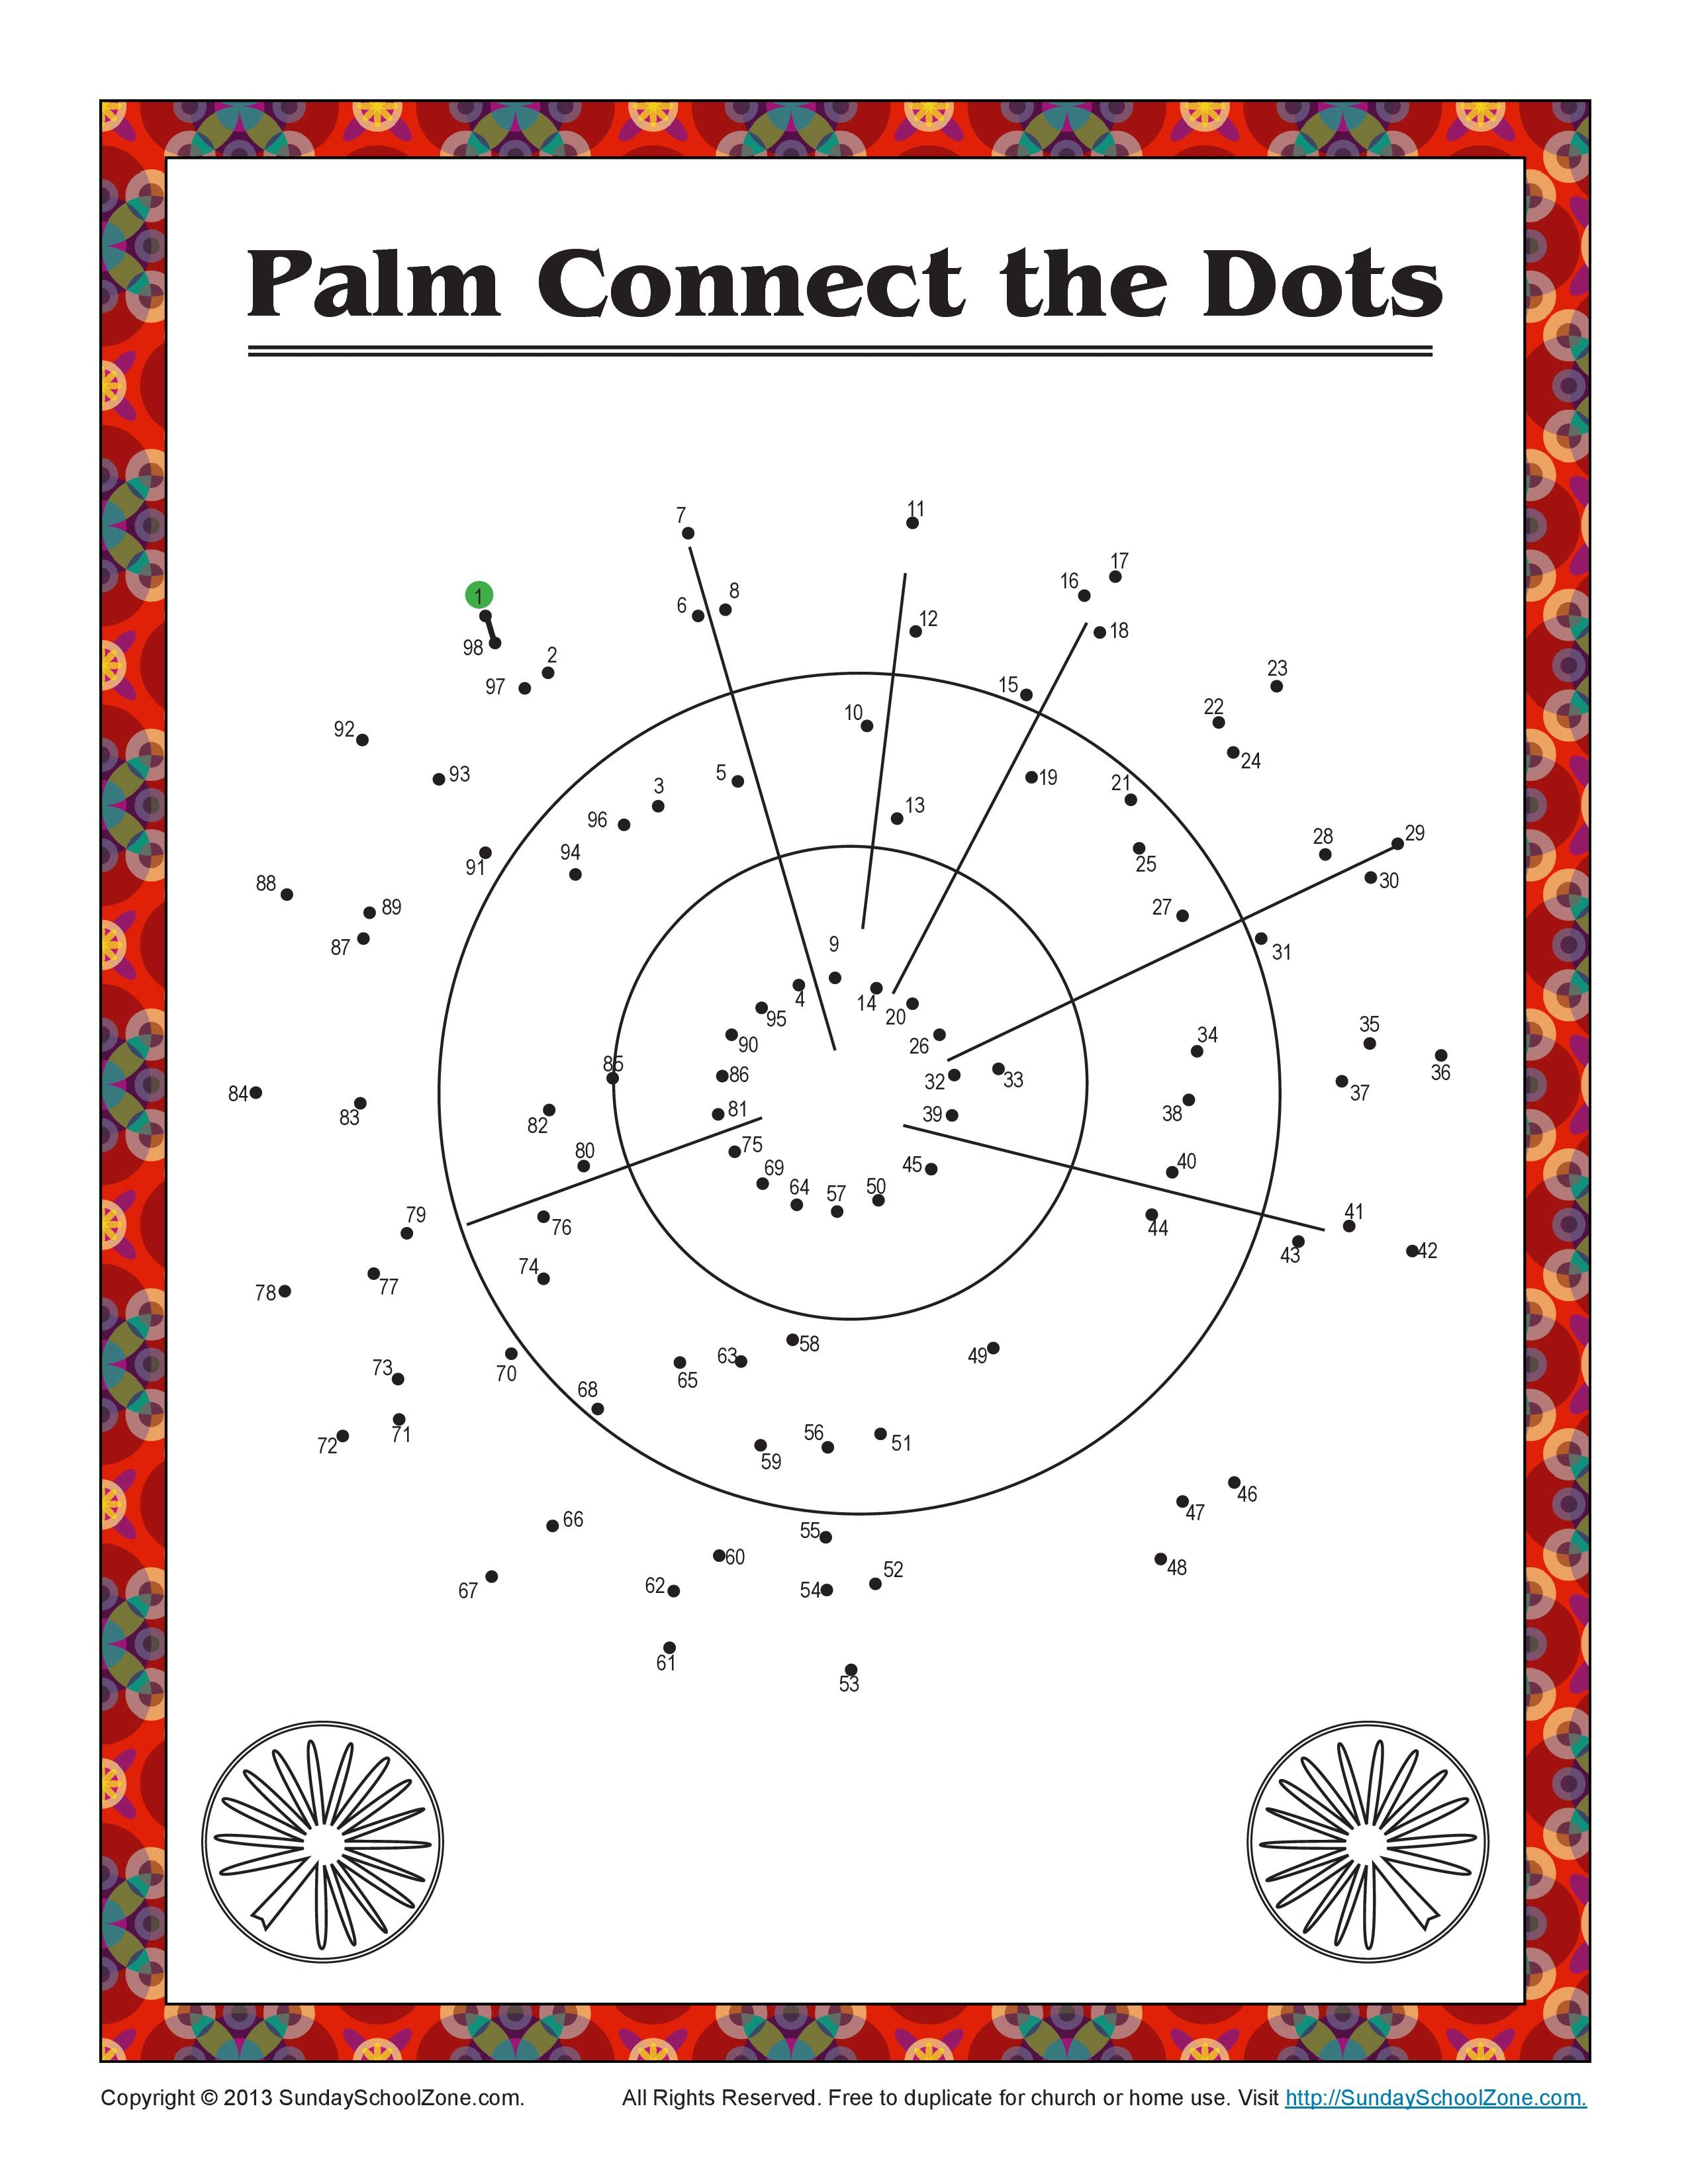 Palm Sunday Connect The Dots Bible Activity On Sunday